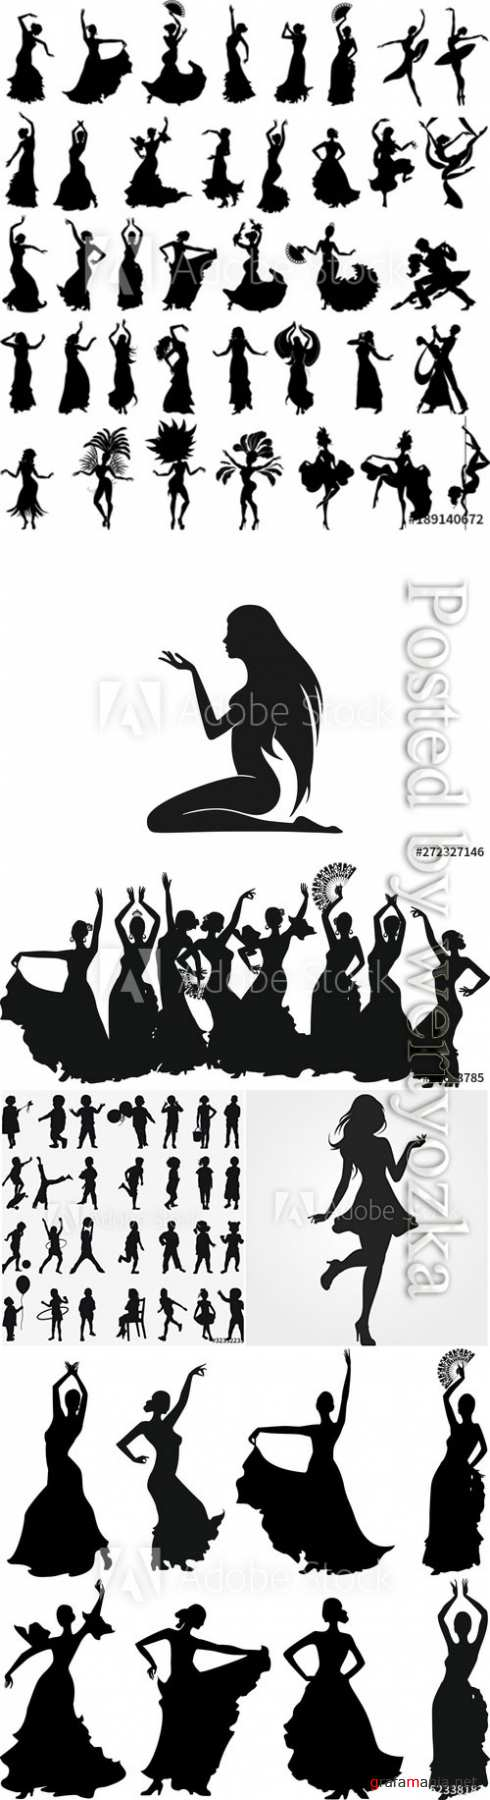 People silhouettes in vector